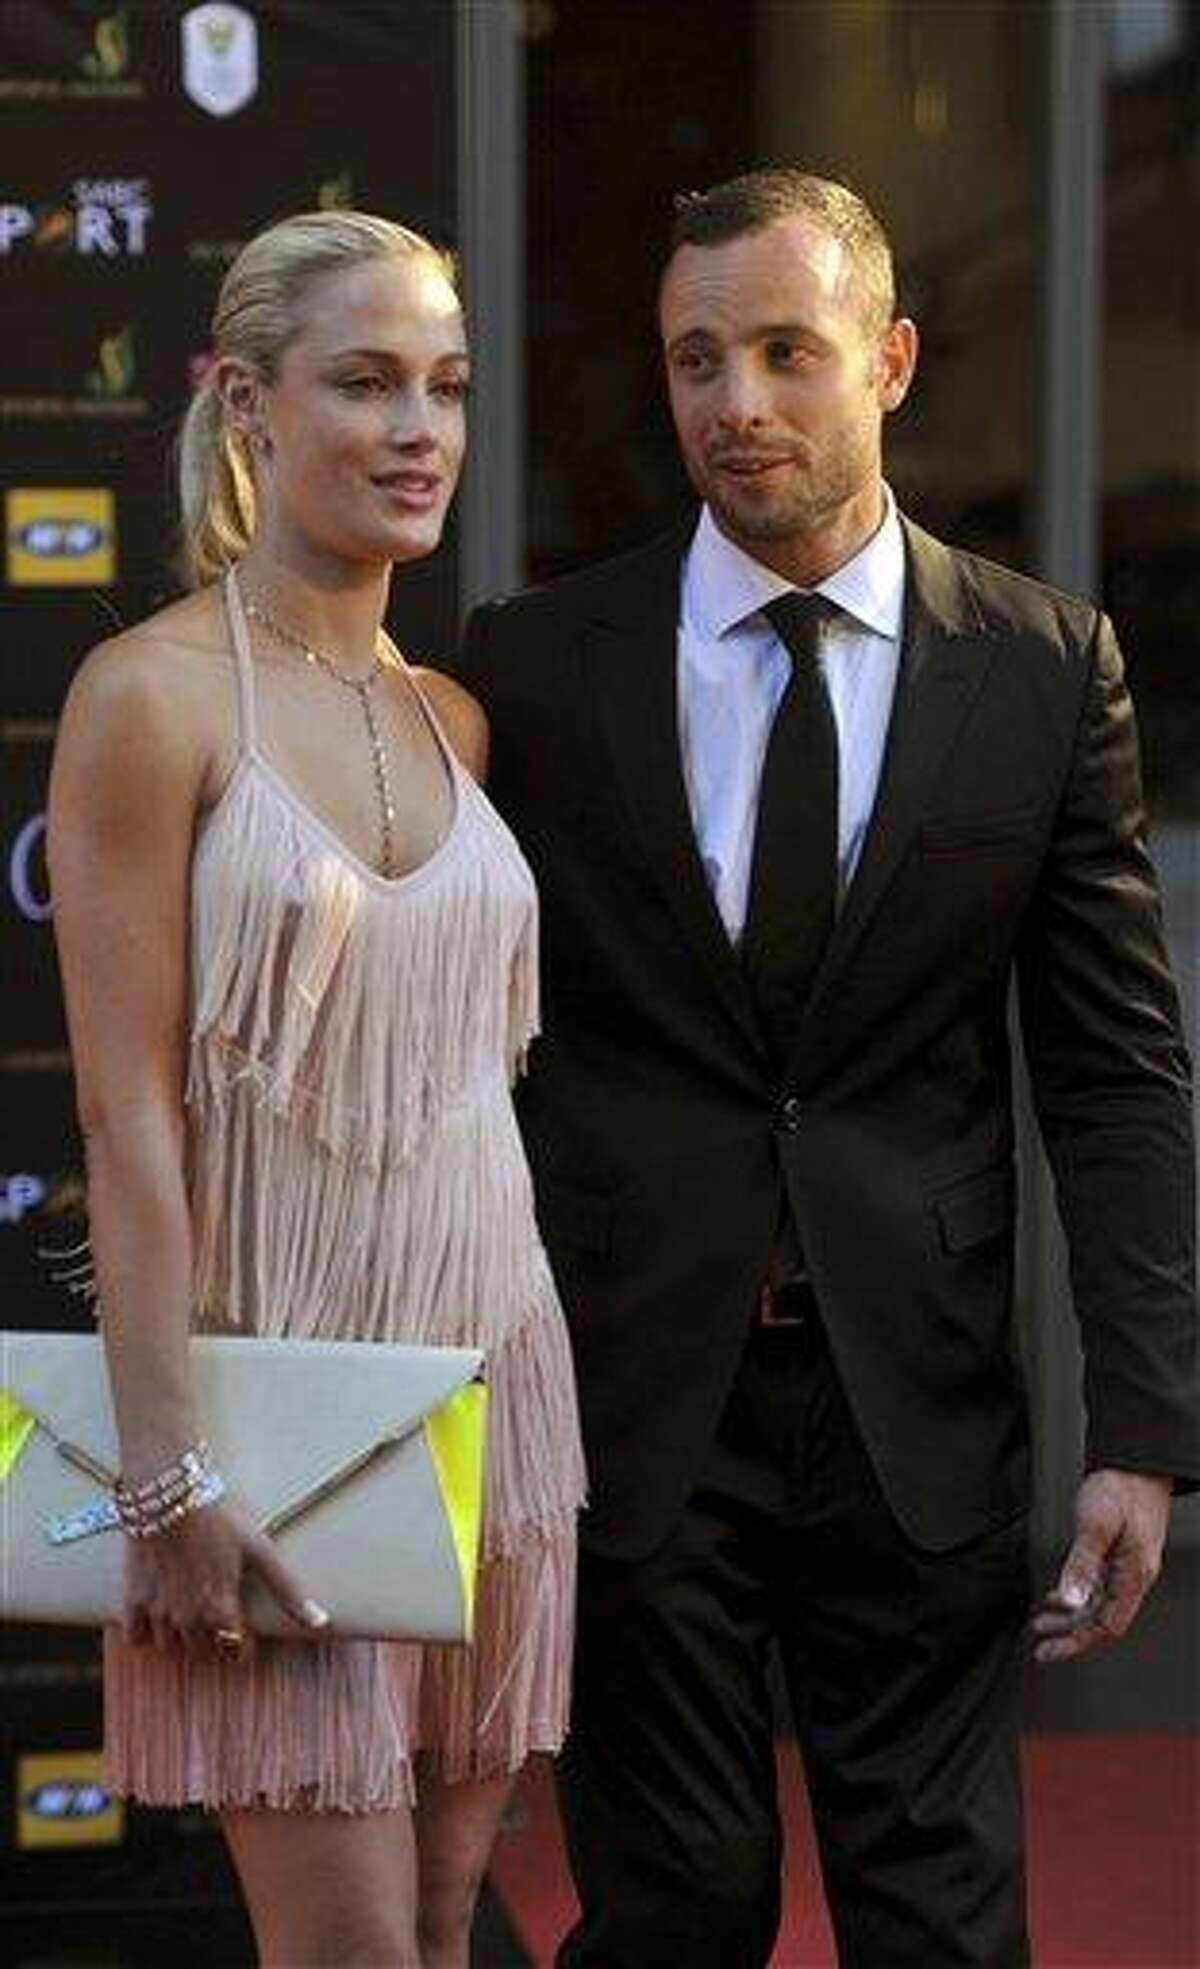 South African Olympic athlete Oscar Pistorius and Reeva Steenkamp, believed to be his girlfriend, at an awards ceremony, in Johannesburg, South Africa. Olympic athlete Oscar Pistorius was taken into custody and was expected to appear in court Thursday, Feb. 14, 2013, after a 30-year-old woman who was believed to be his girlfriend was shot dead at his home in South Africa's capital, Pretoria. AP Photo/Lucky Nxumalo-Citypress